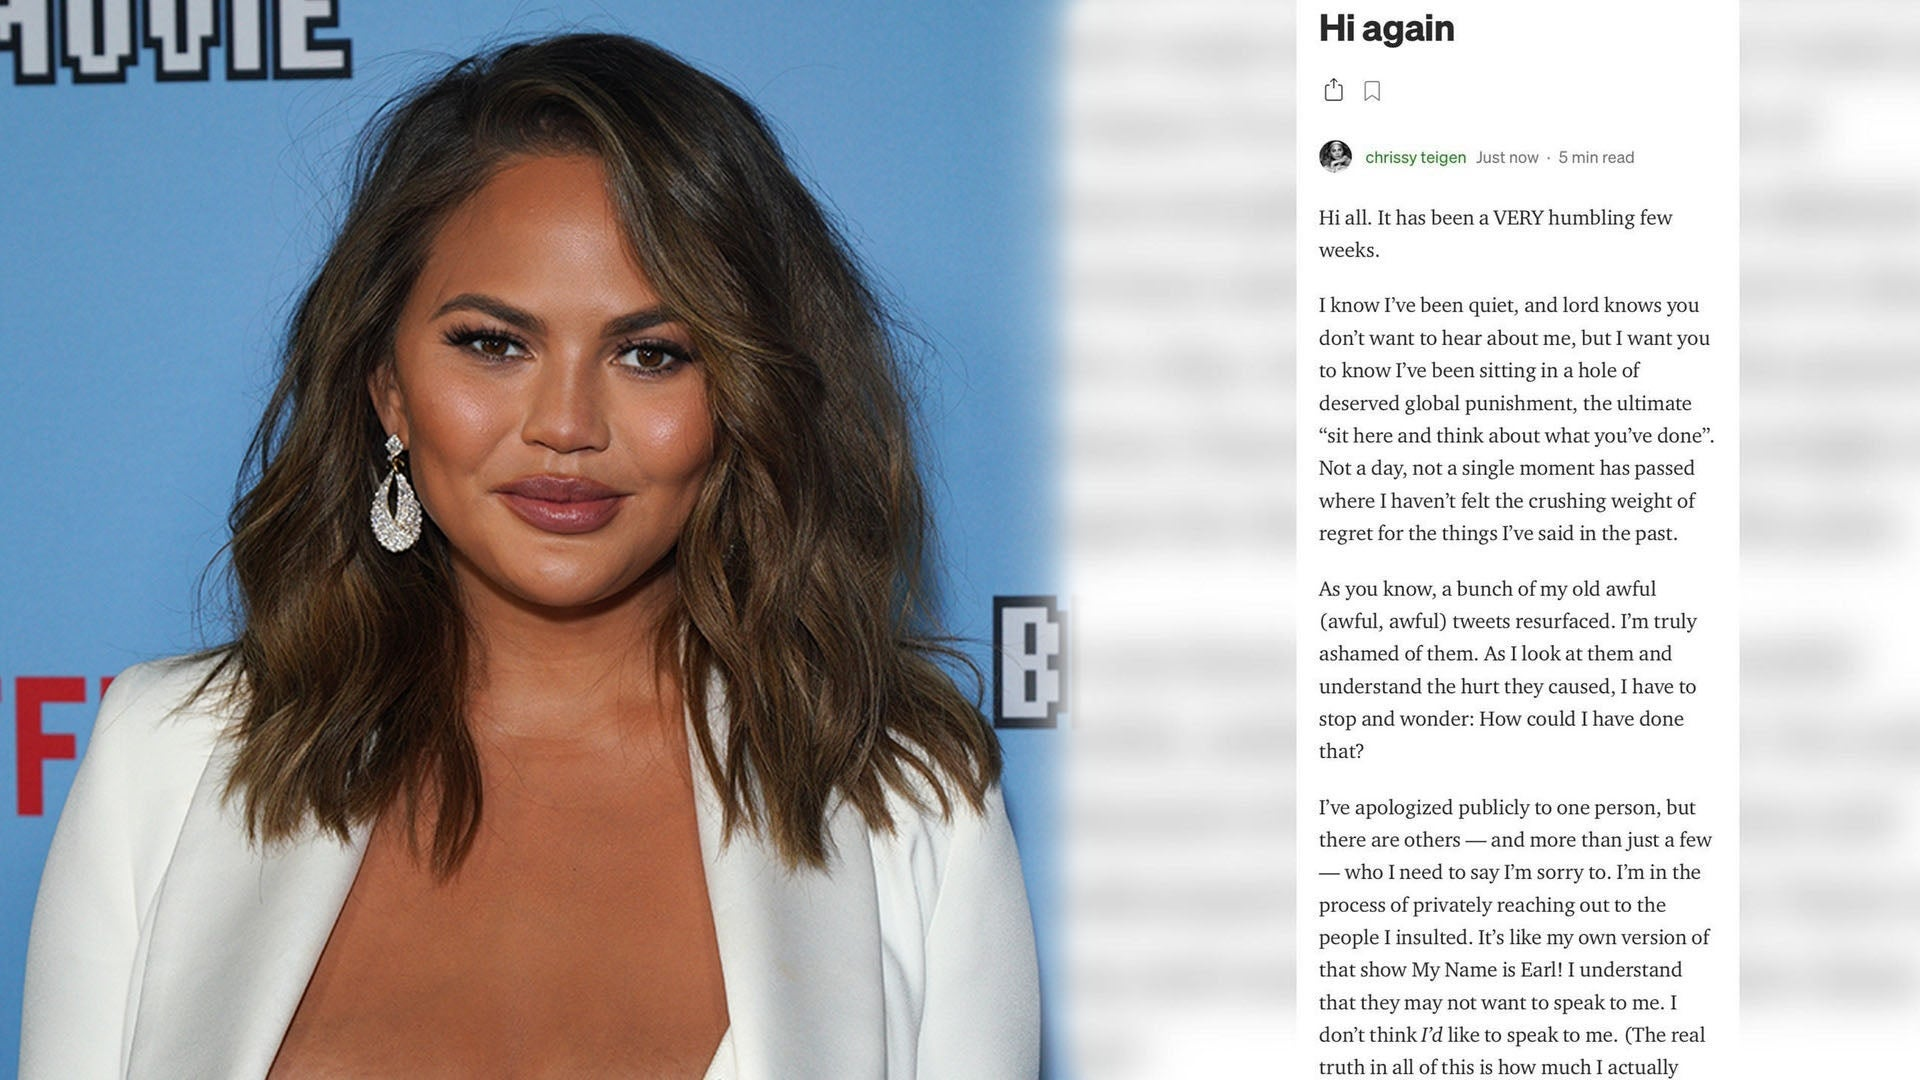 Chrissy Teigen Gets Fully Naked In Hot Photoshoot with